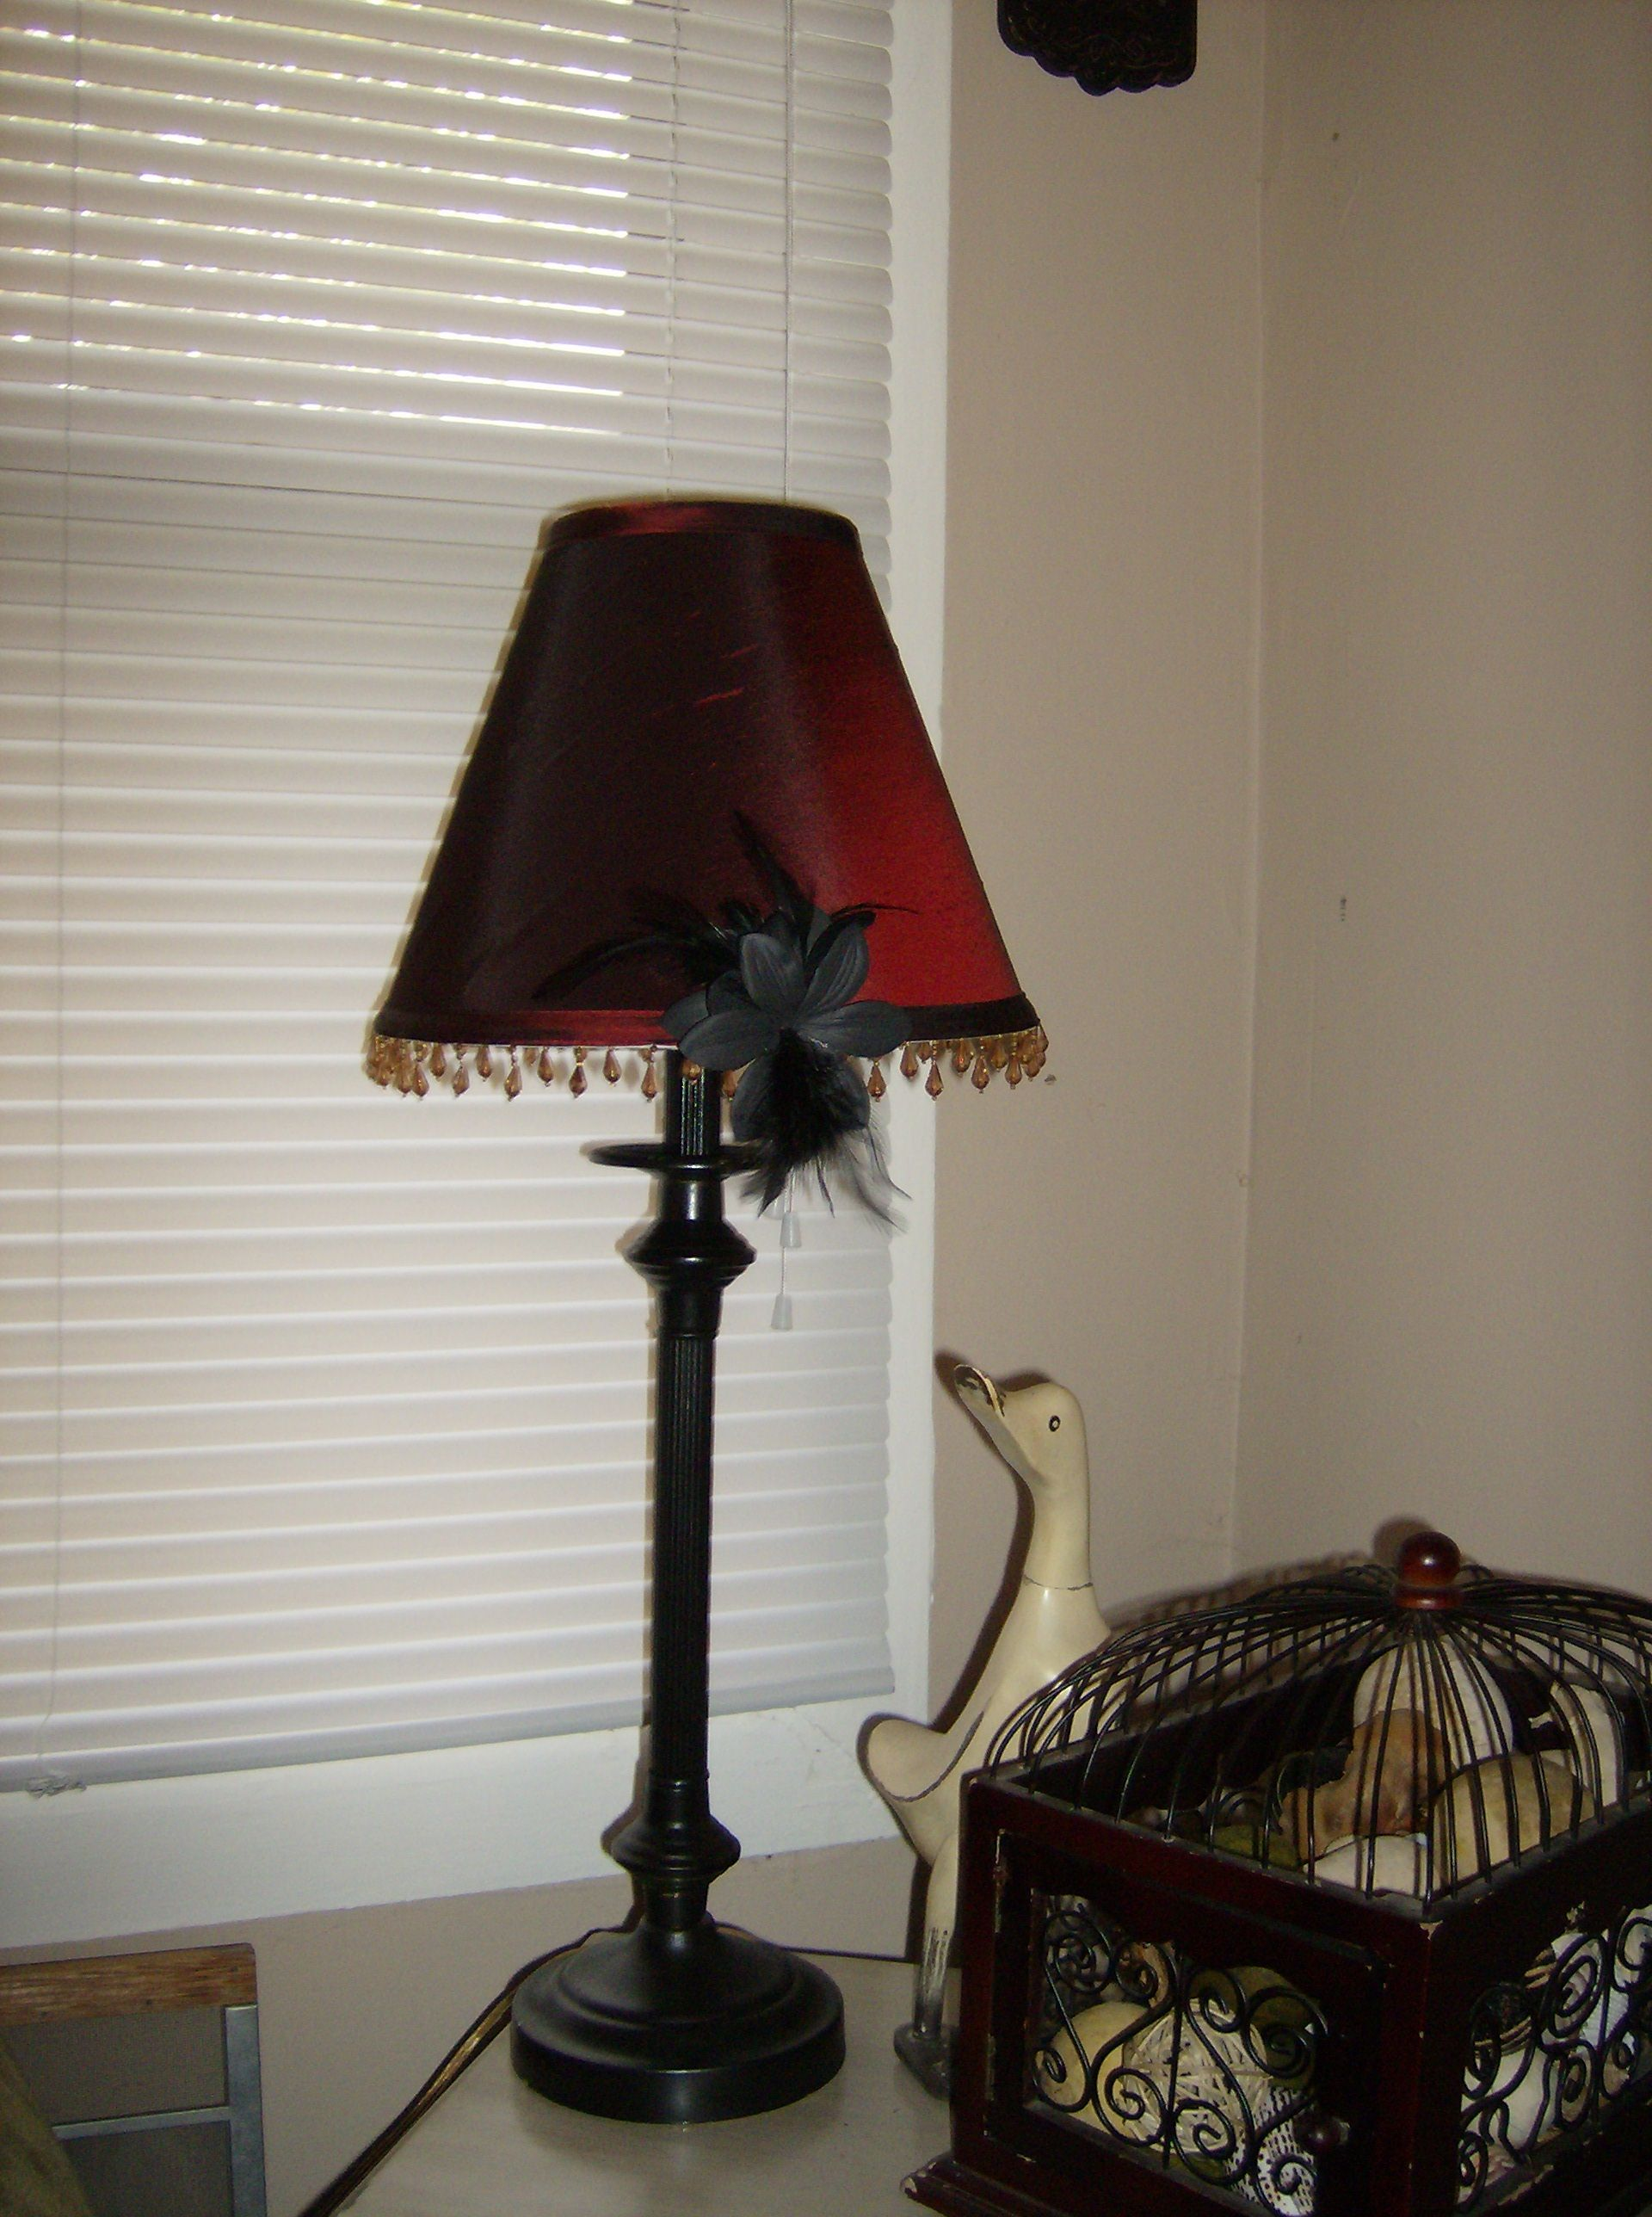 Hobby Lobby Lamp Shades Best Repurposed Lamp Shade Ala Hobby Lobby Projects  Pinterest Design Inspiration